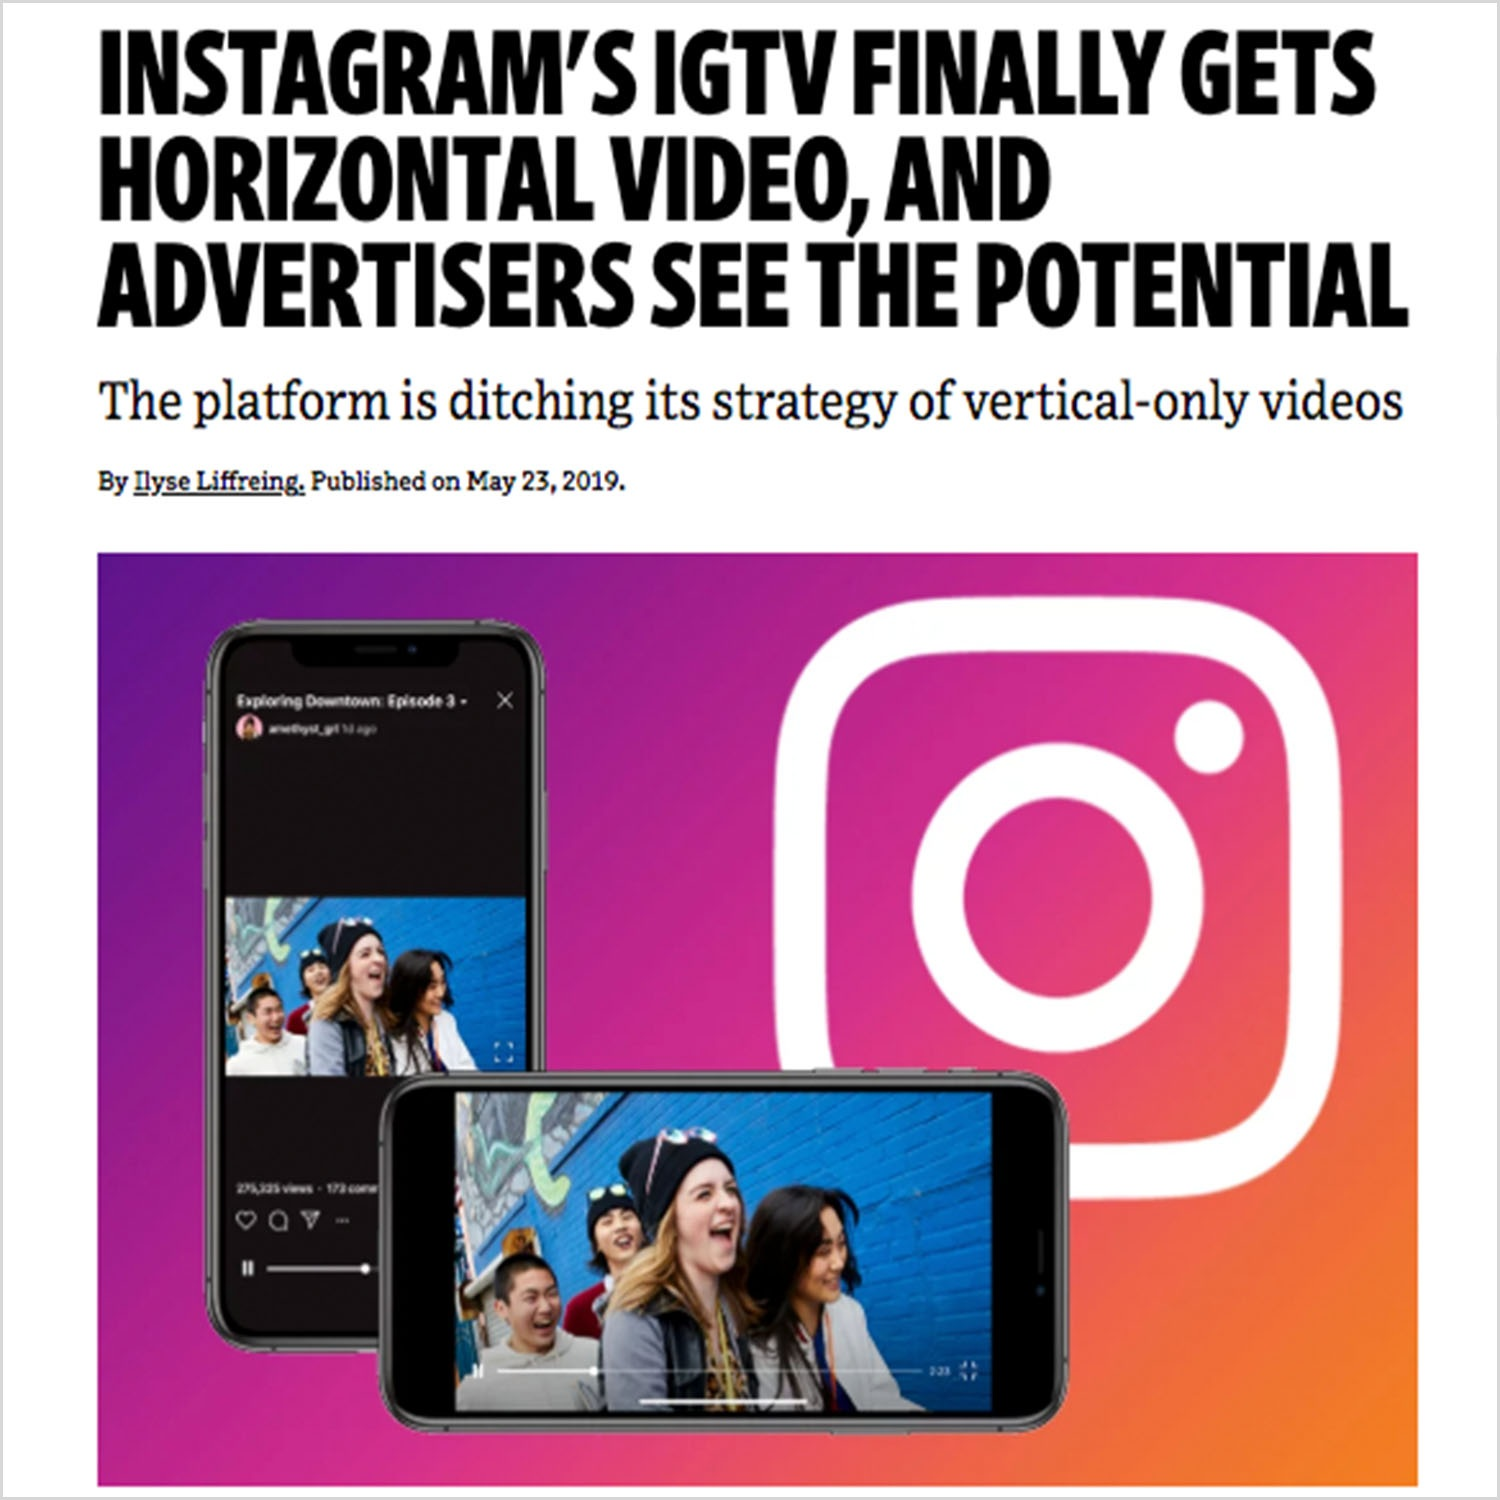 Advertisers See The Potential of IGTV Horizontal Video